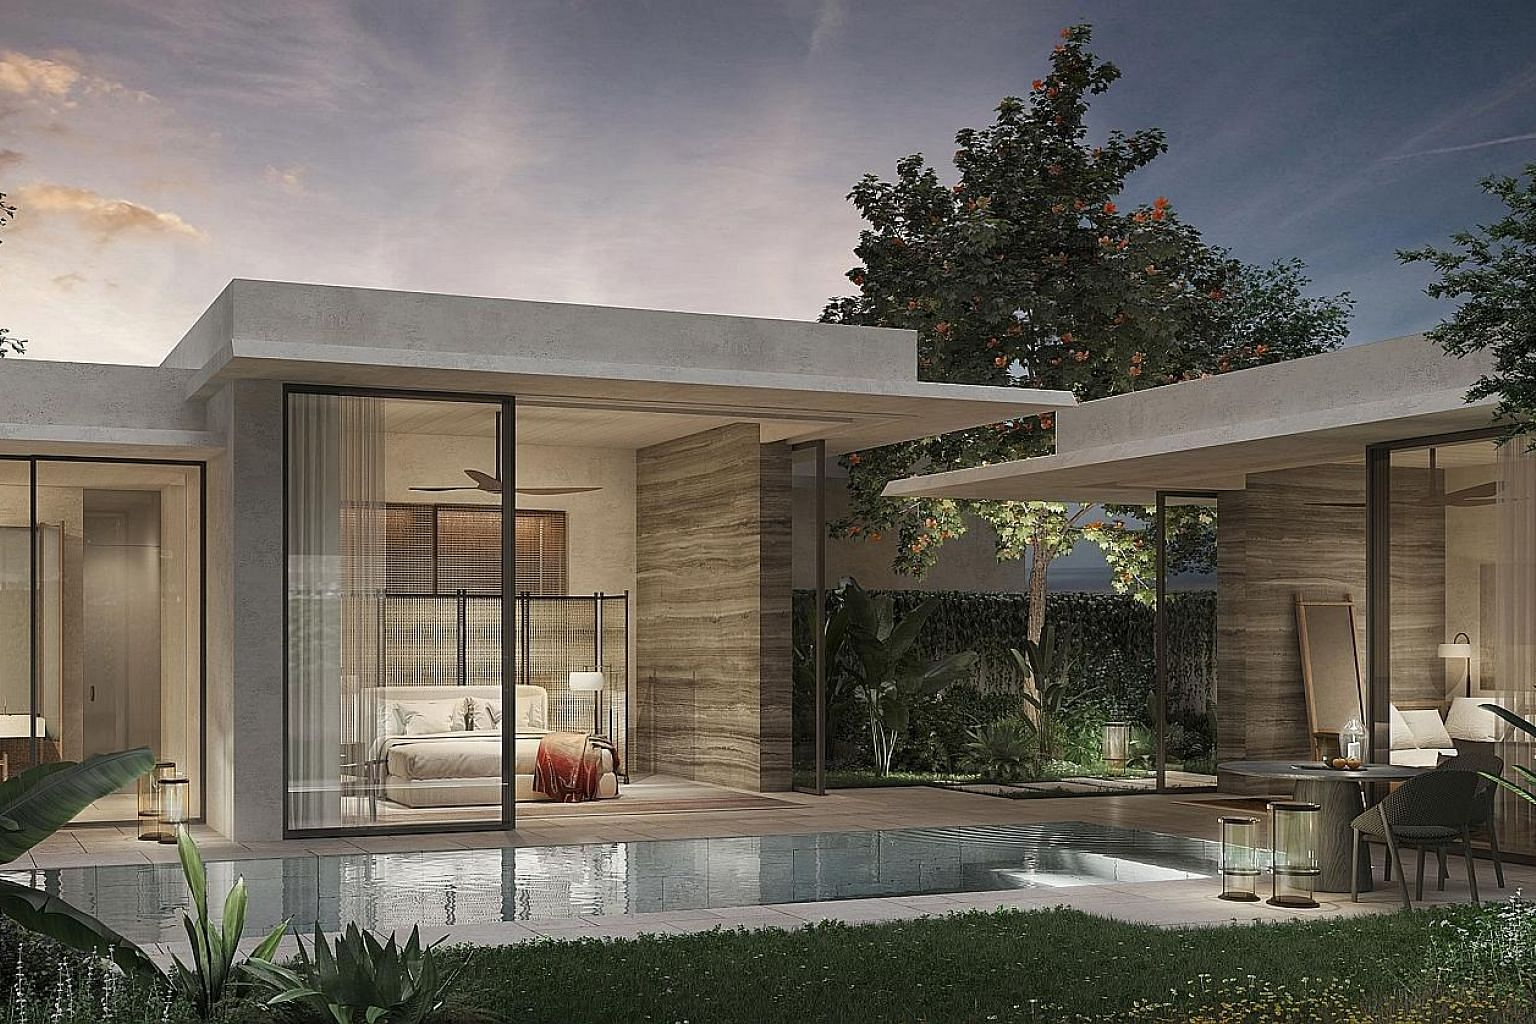 The proposed Raffles Sentosa Resort & Spa Singapore will feature 61 villas, each with its own courtyard and private swimming pool, on a one million sq ft property adjacent to the existing Sofitel on the island. The forested area is currently unoccupi